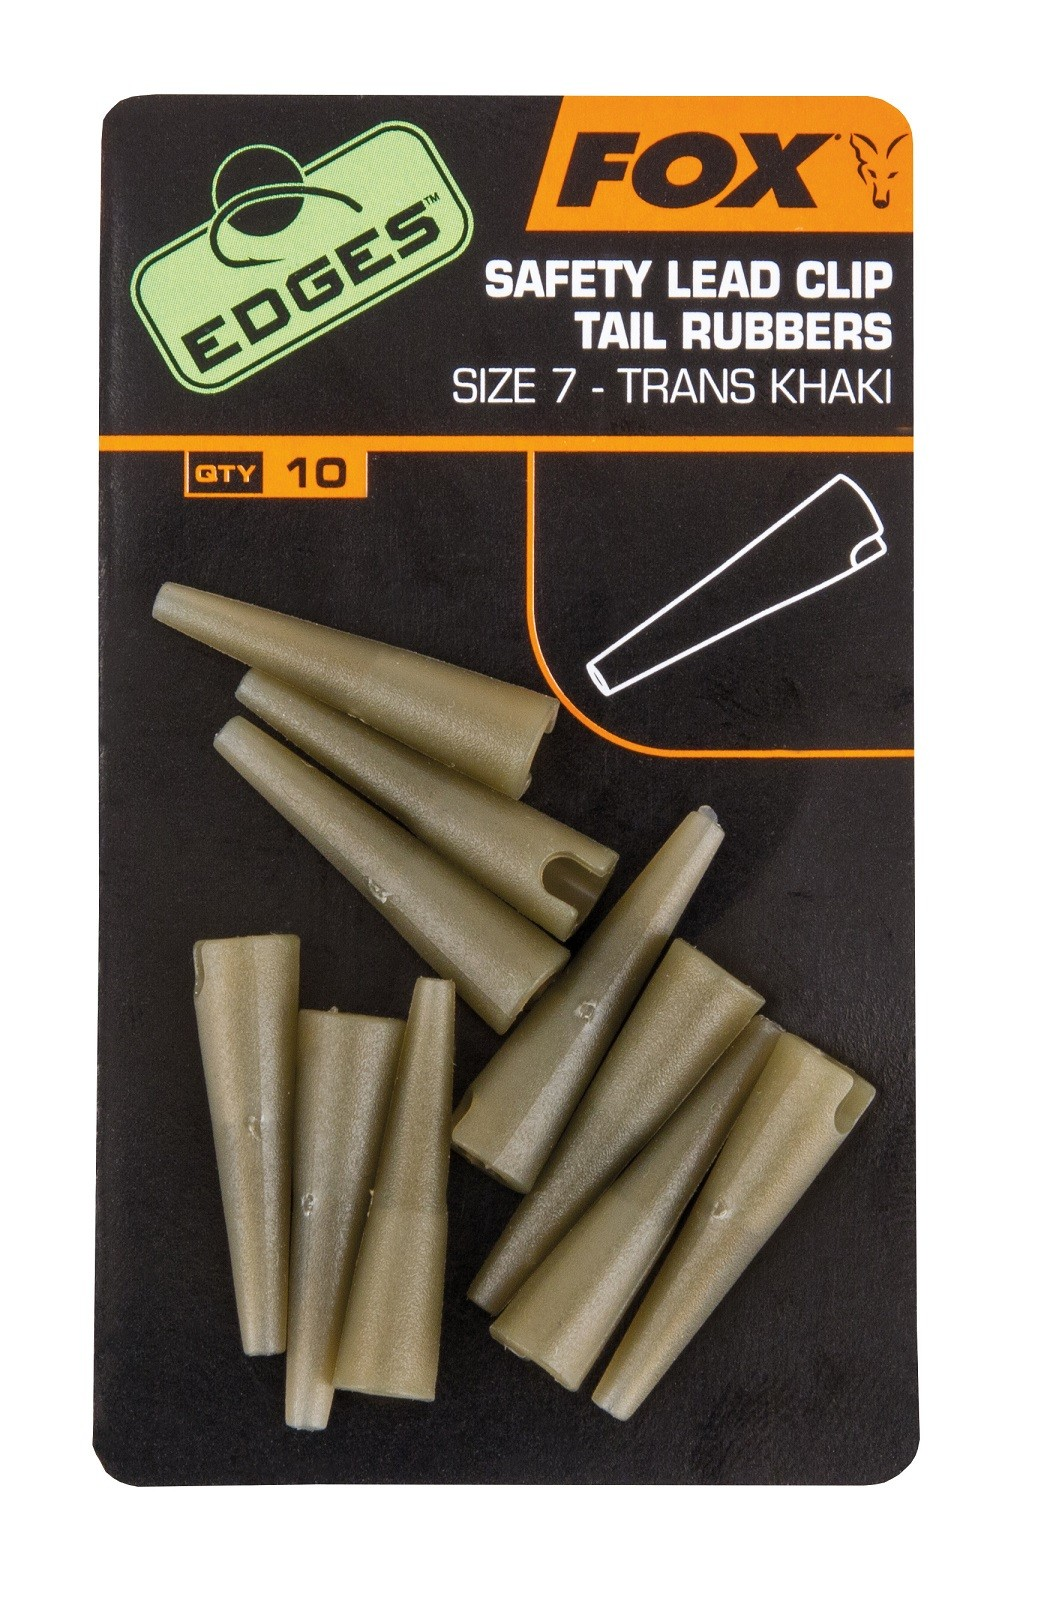 Fox - Edges Tail Rubbers - Size 7